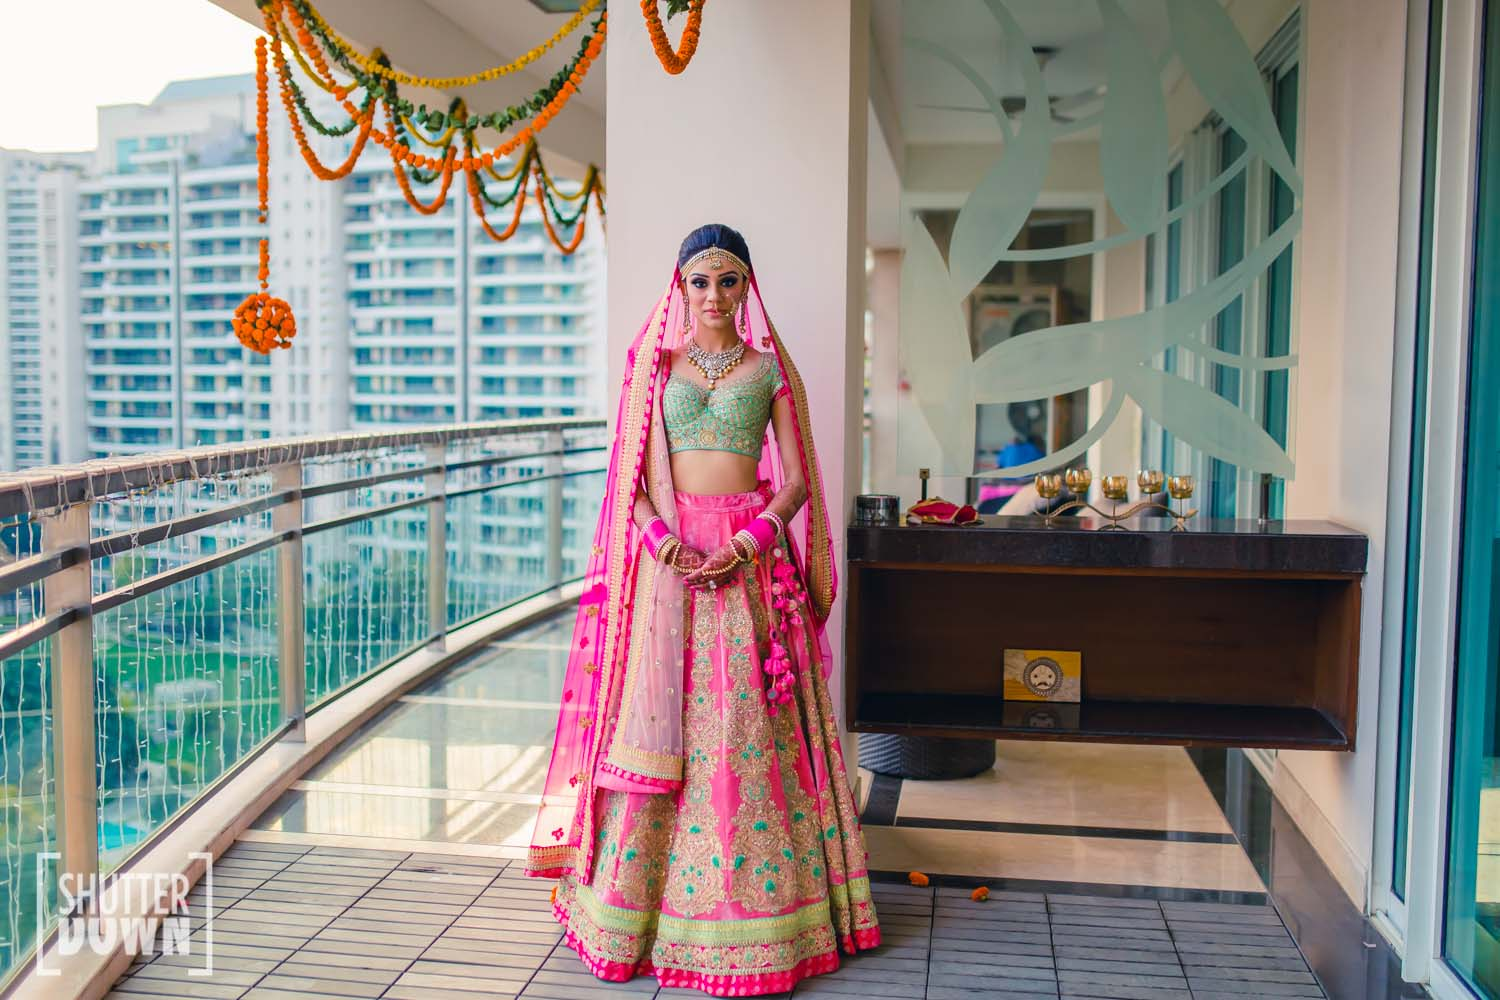 Delhi Bride in Fuchsia and Pastel Green Lehenga| 11 Unique Lehenga Hues That Will Make You Ditch The Usual Red | FunctionMania